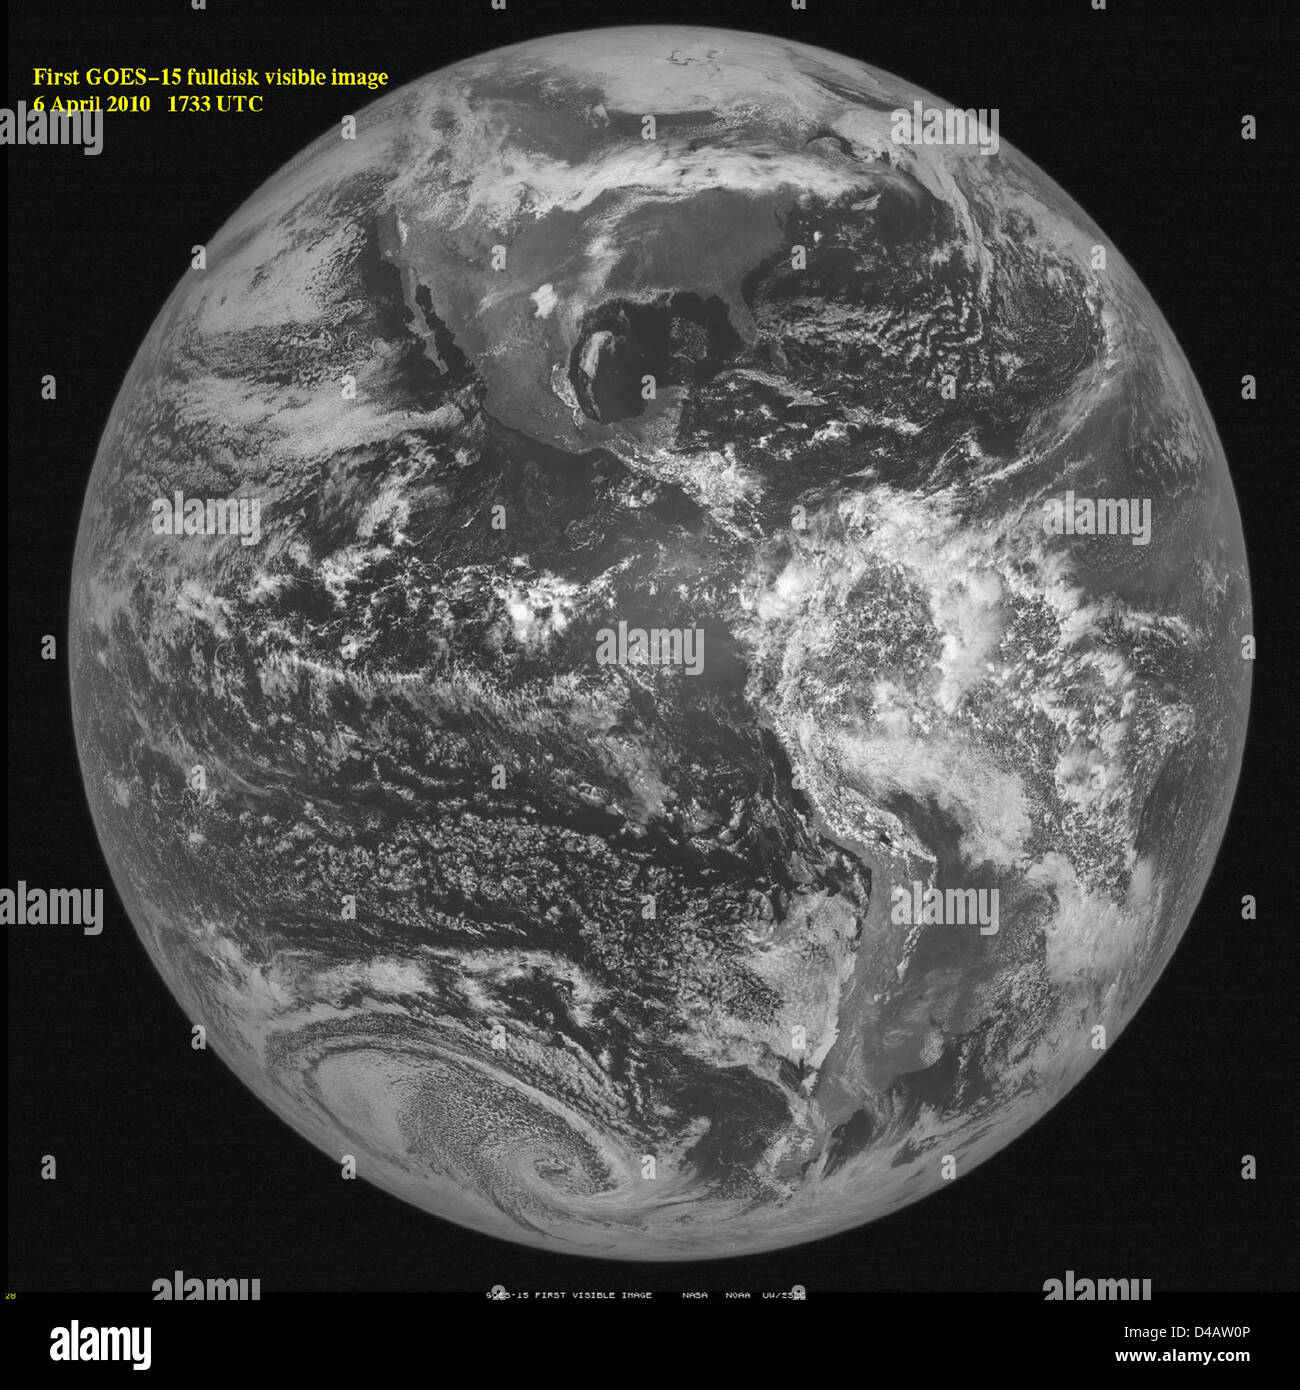 GOES-15 Opens Its 'Eyes' and Sees First Image of Earth - Stock Image